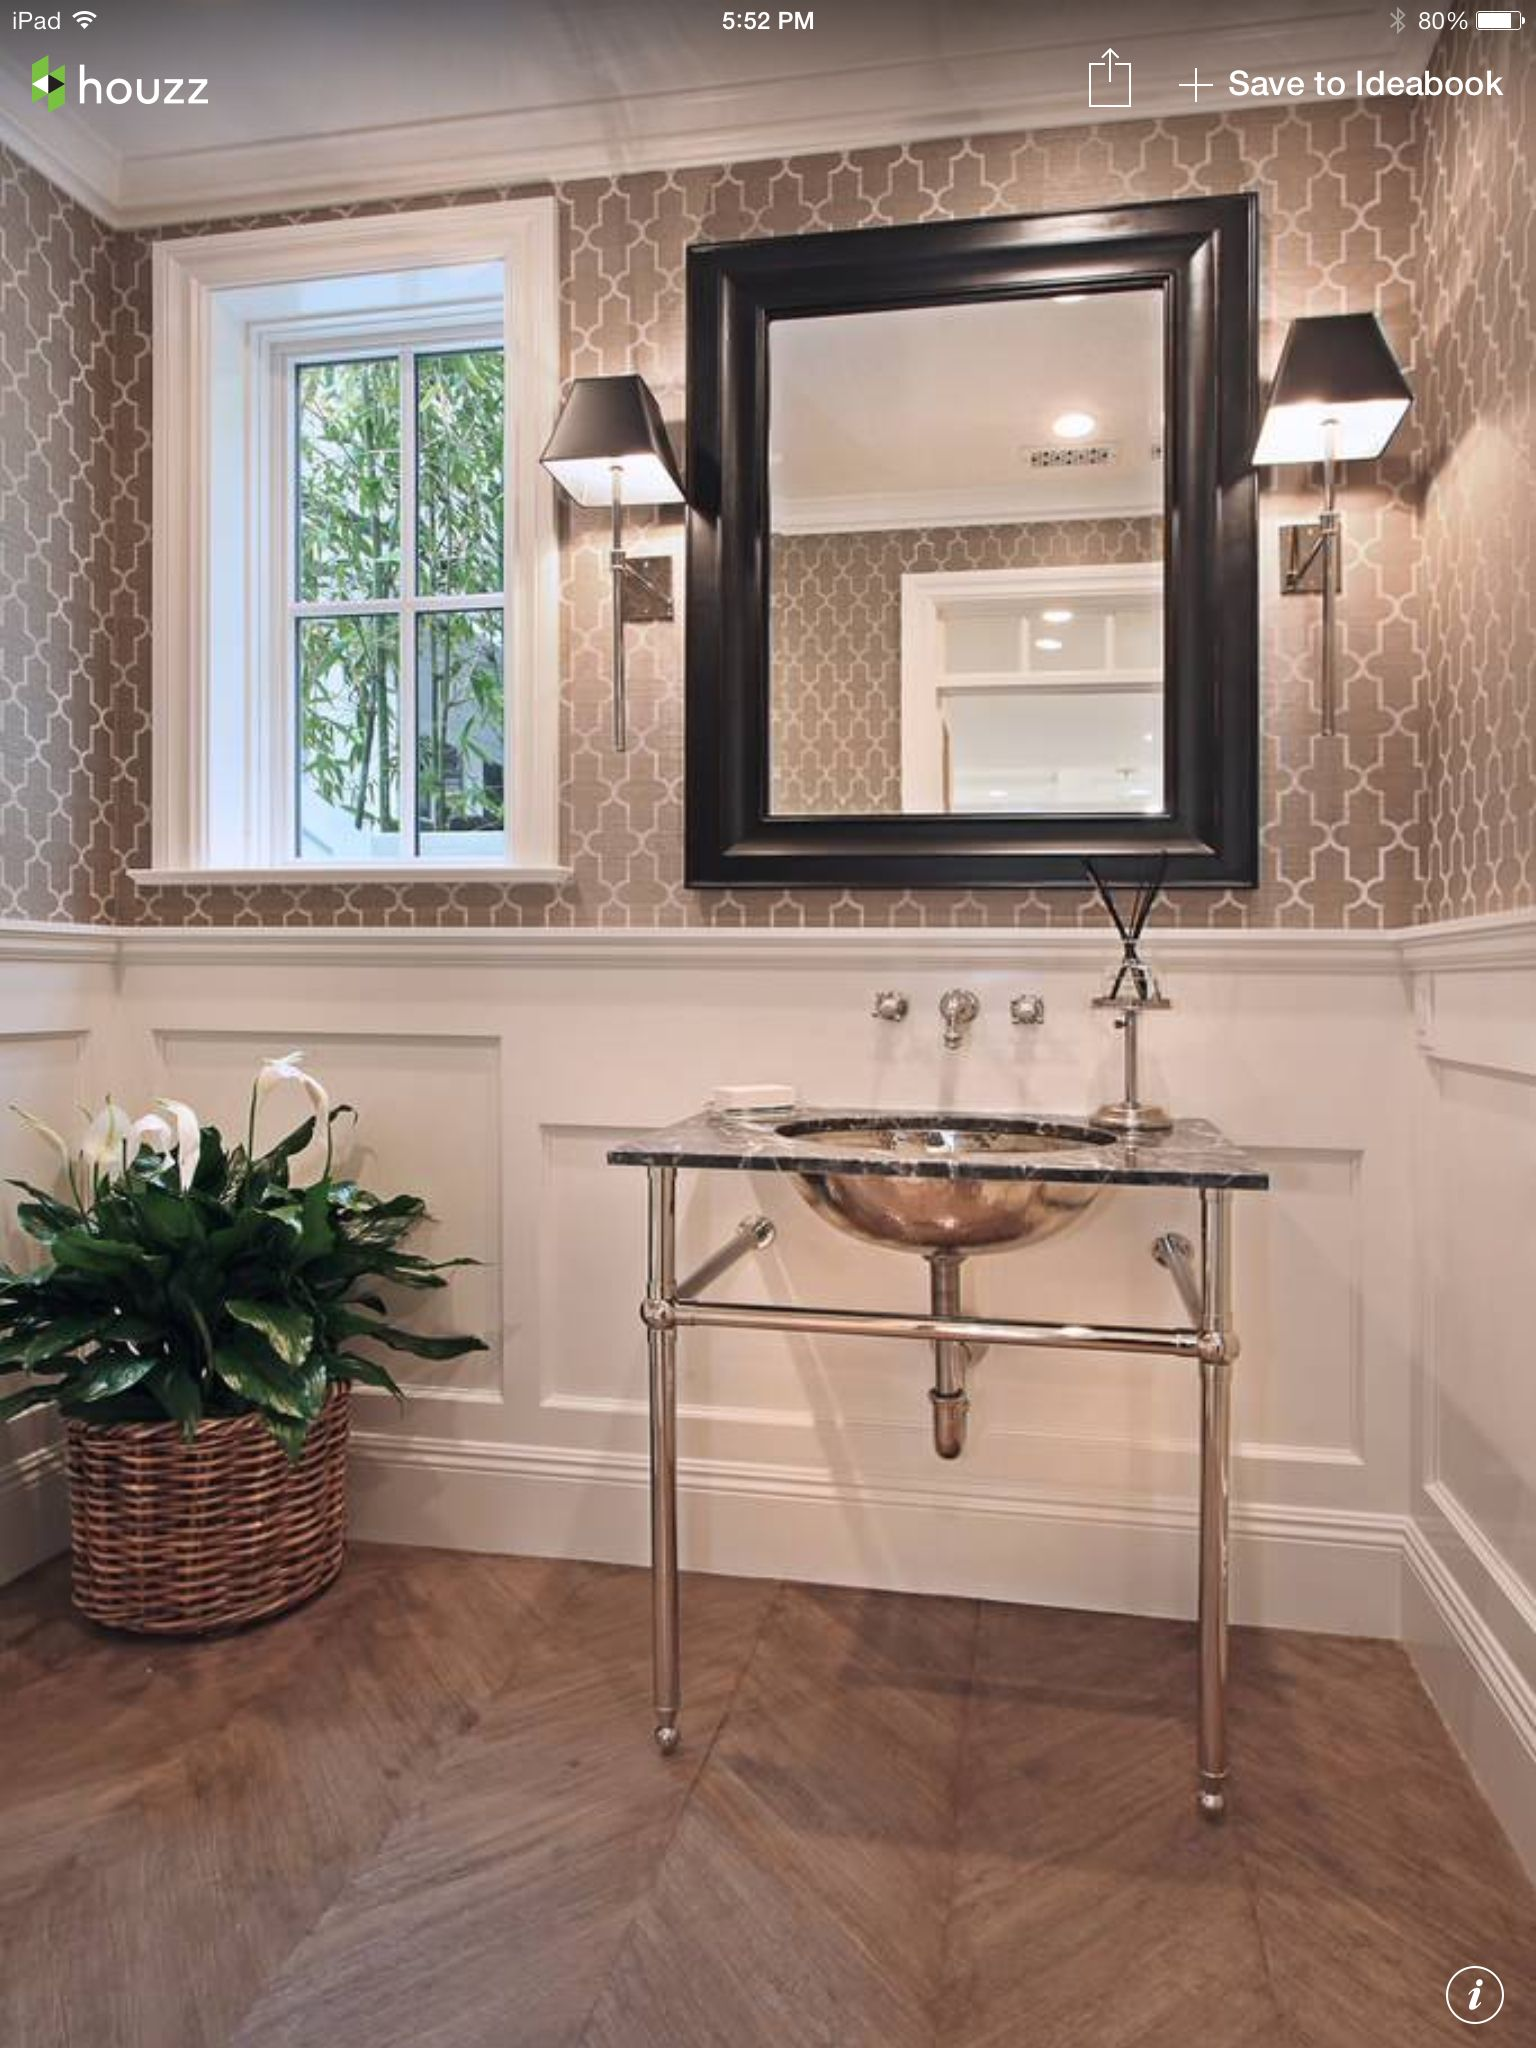 Graphic Wallpaper Above The Chair Rail Powder Room Design Powder Room Wallpaper Home